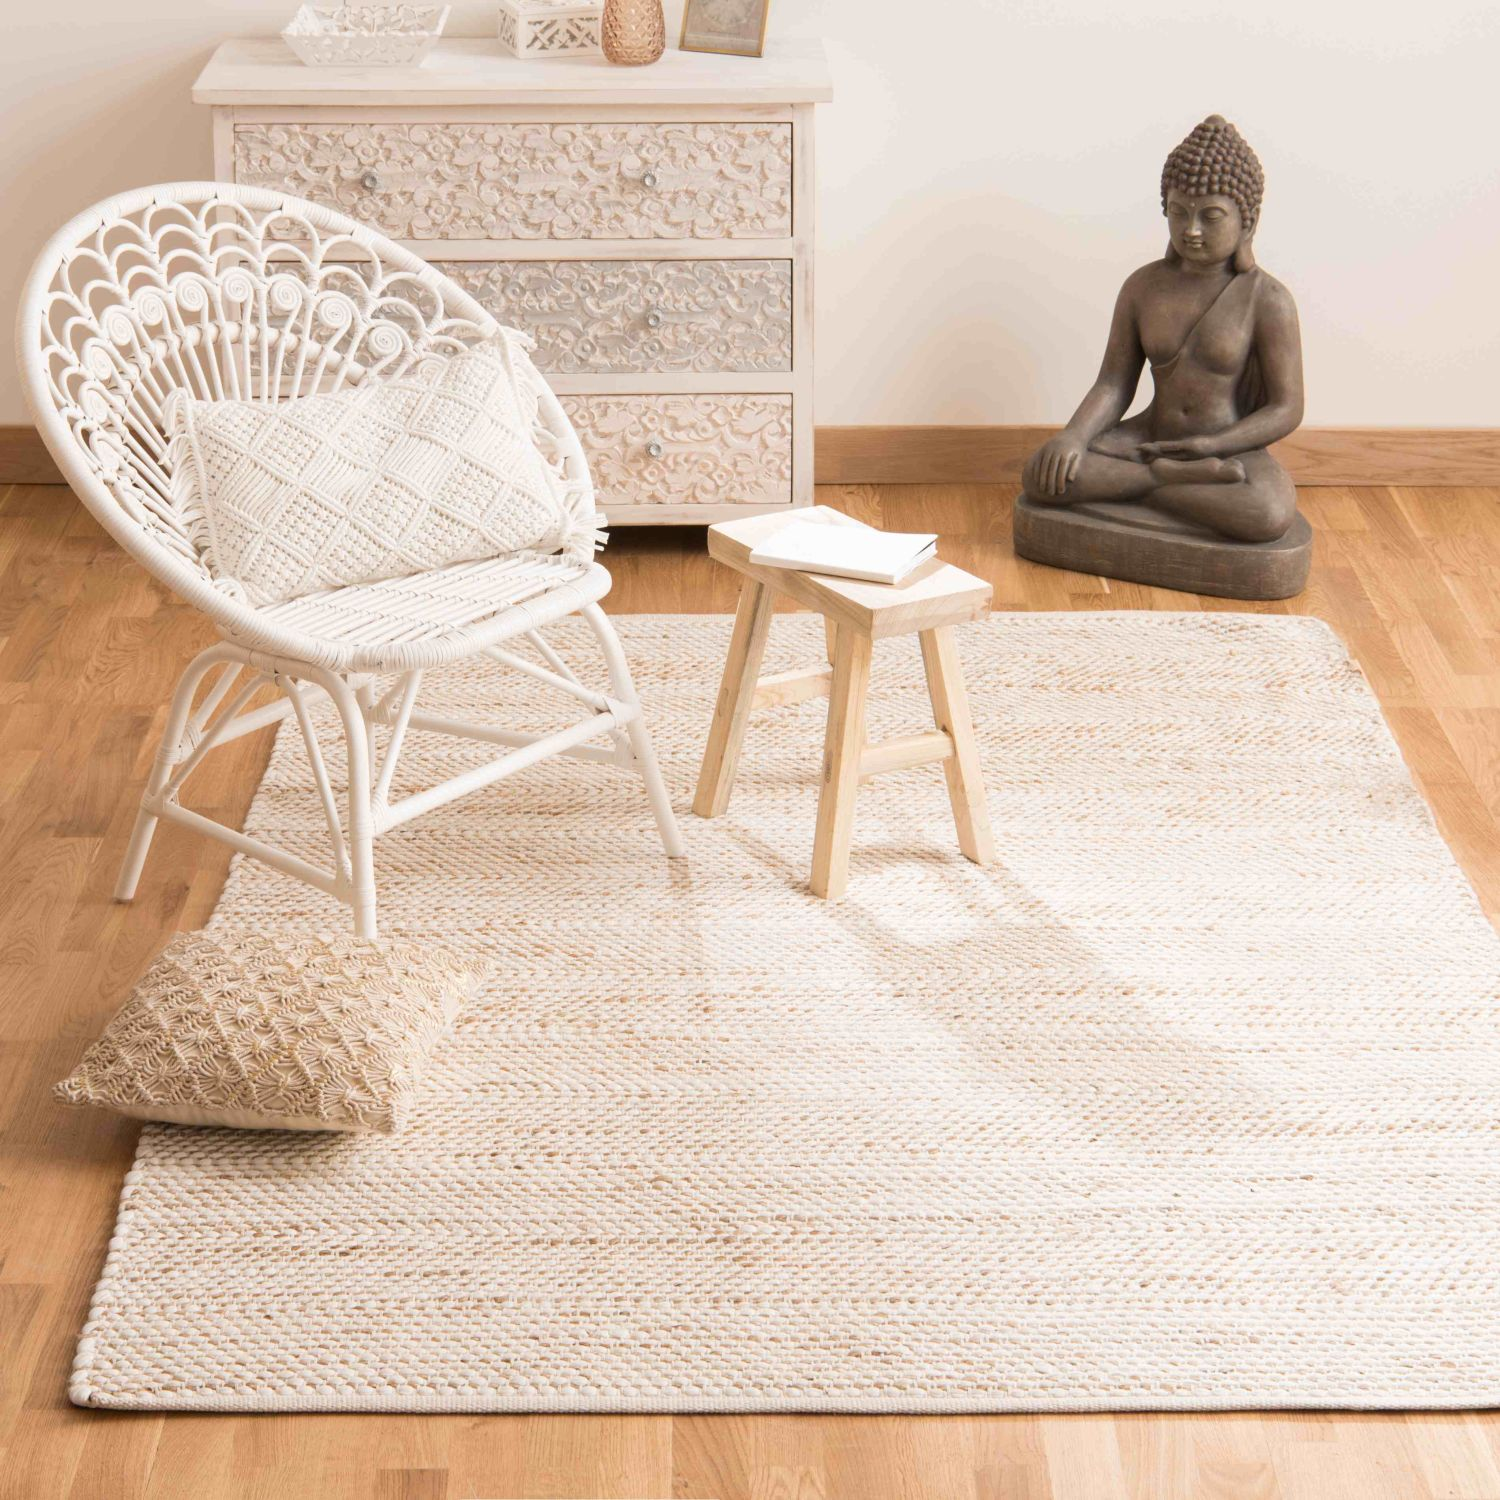 tapis en coton et jute 160x230 maisons du monde. Black Bedroom Furniture Sets. Home Design Ideas